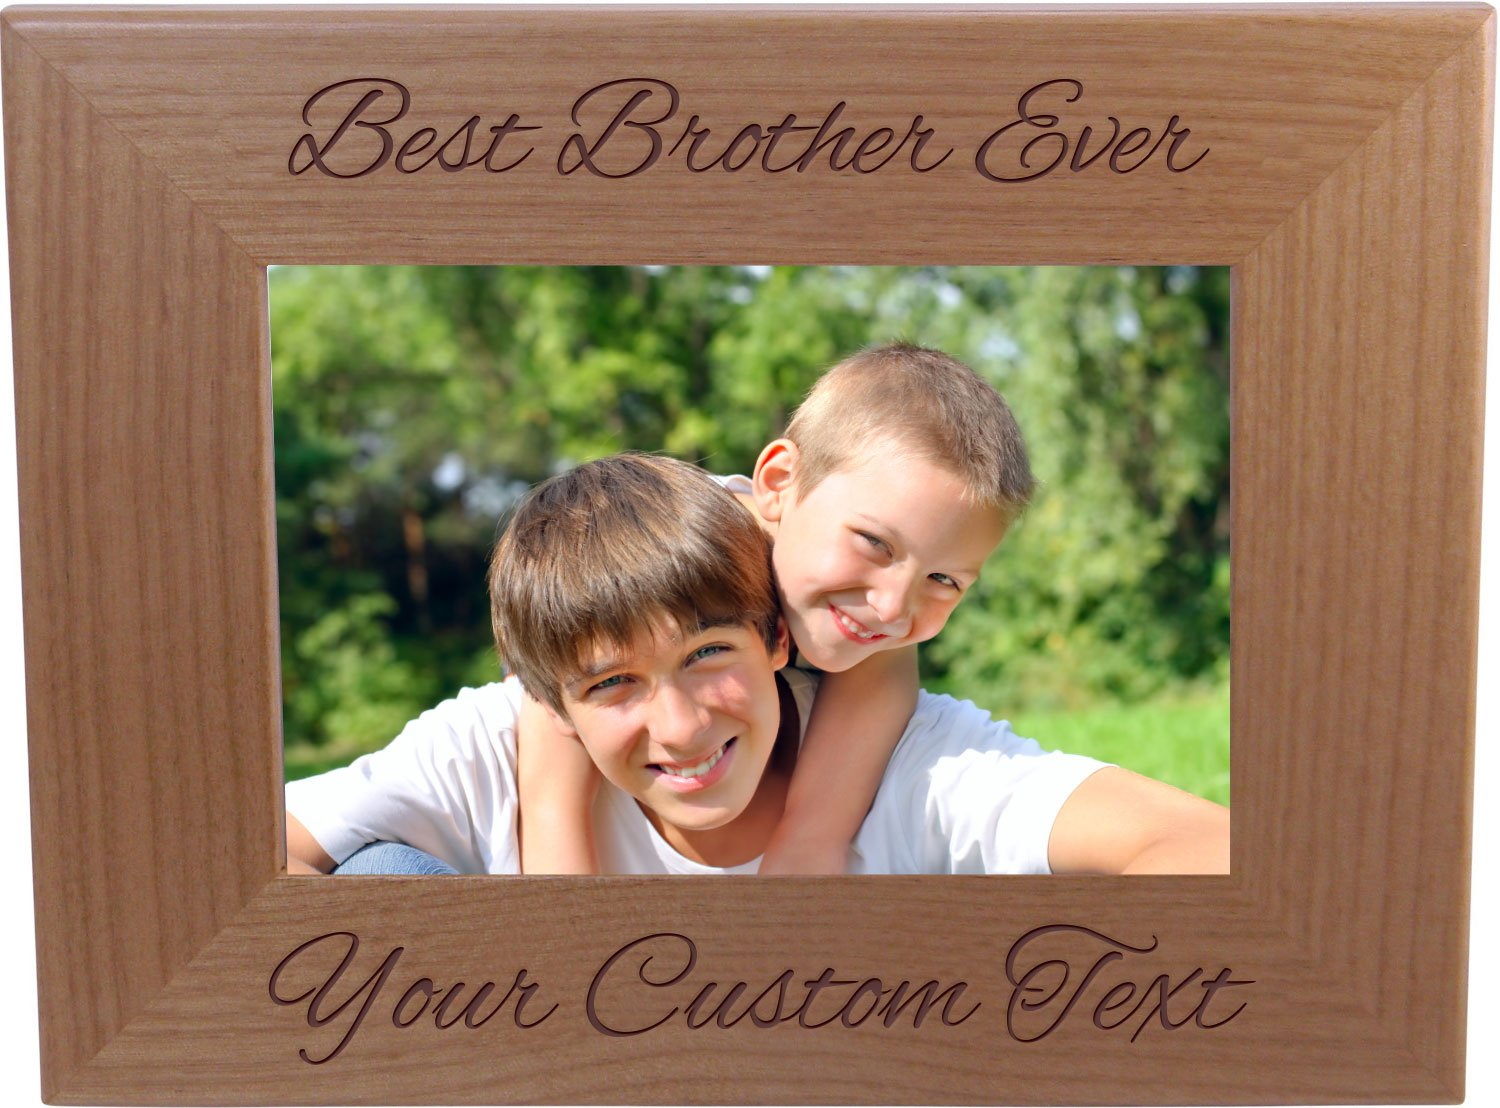 Best Brother Ever Custom 4x6 Inch Wood Picture Frame - Add your custom text - Great Gift for Birthday, Christmas Gift for Brother